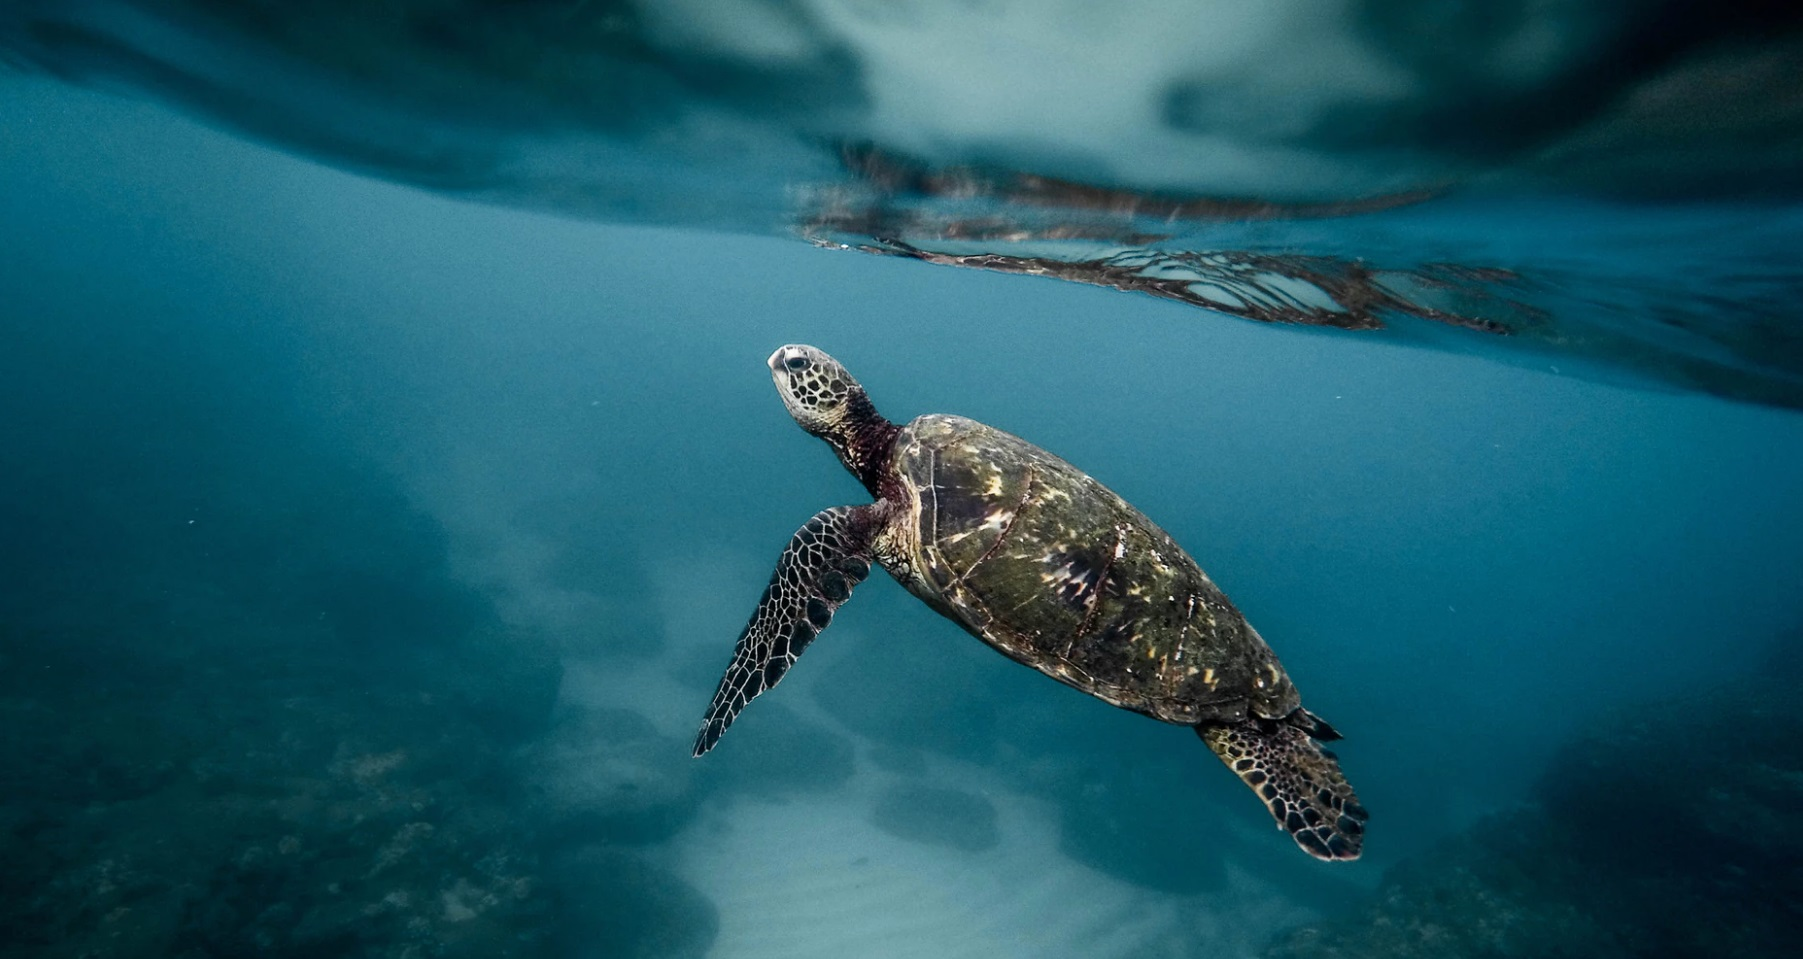 Oxygen levels in Earth's oceans continue to drop